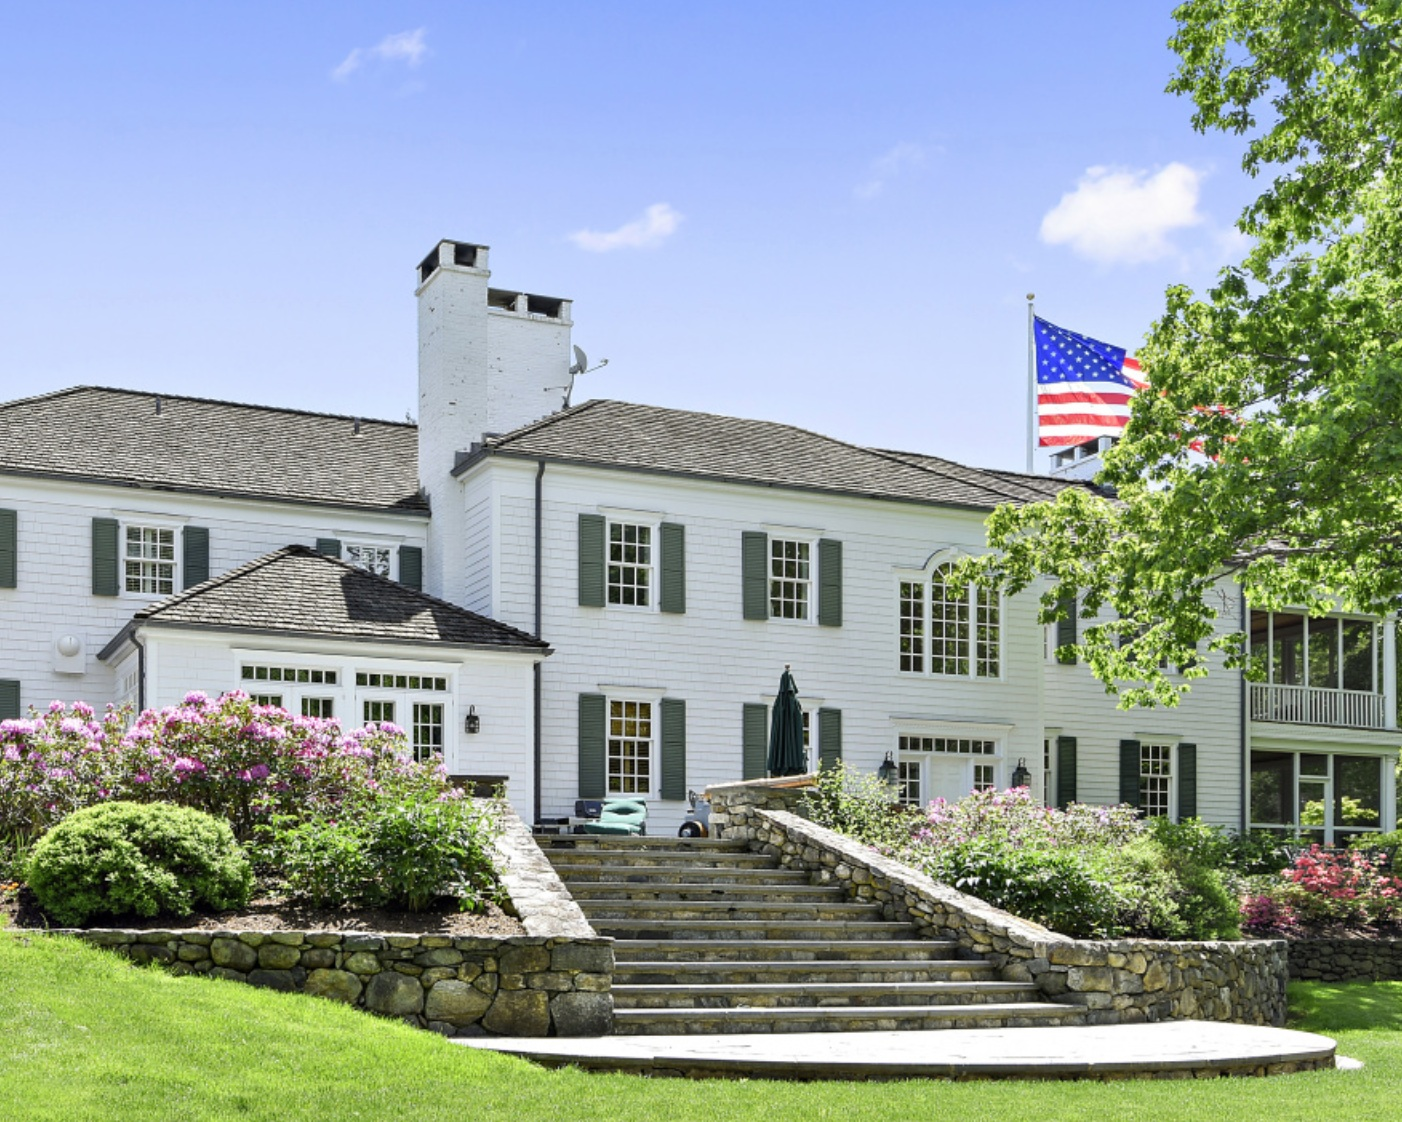 Ginnel Real Estate - 55 Westchester Avenue, Pound Ridge☎︎ 914-764-2424